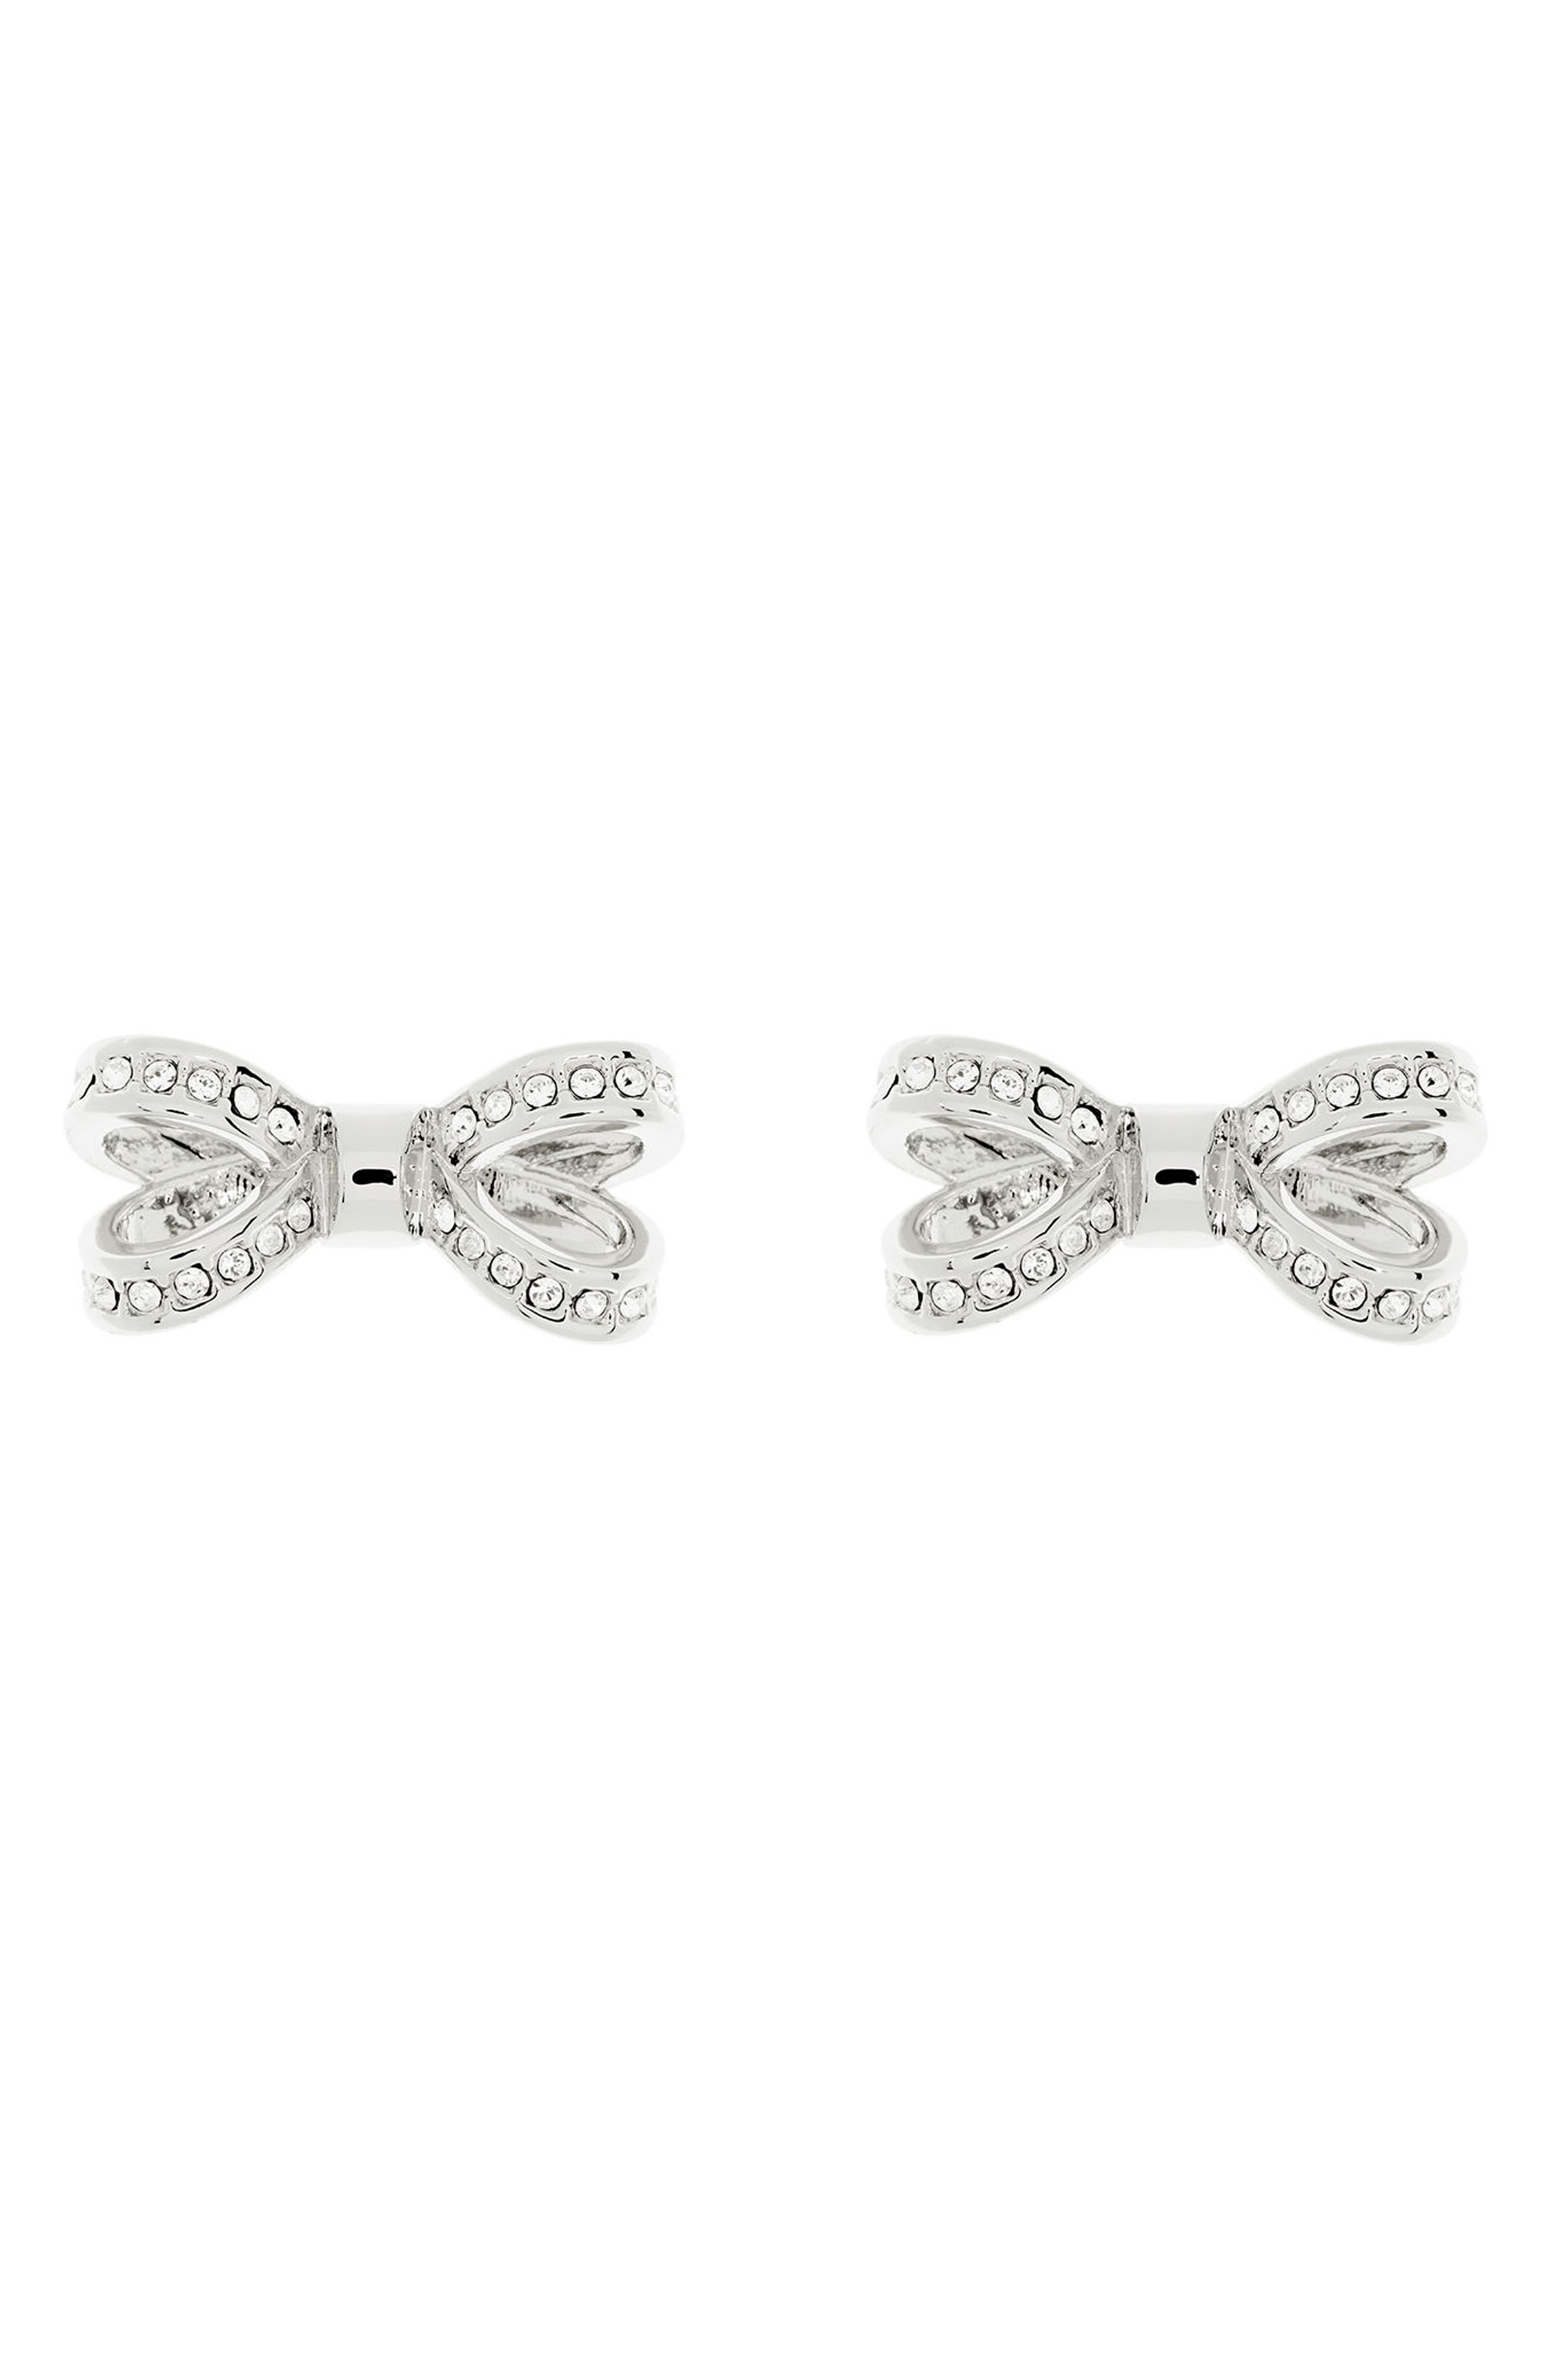 Mini Opulent Pavé Bow Stud Earrings,                             Main thumbnail 1, color,                             041